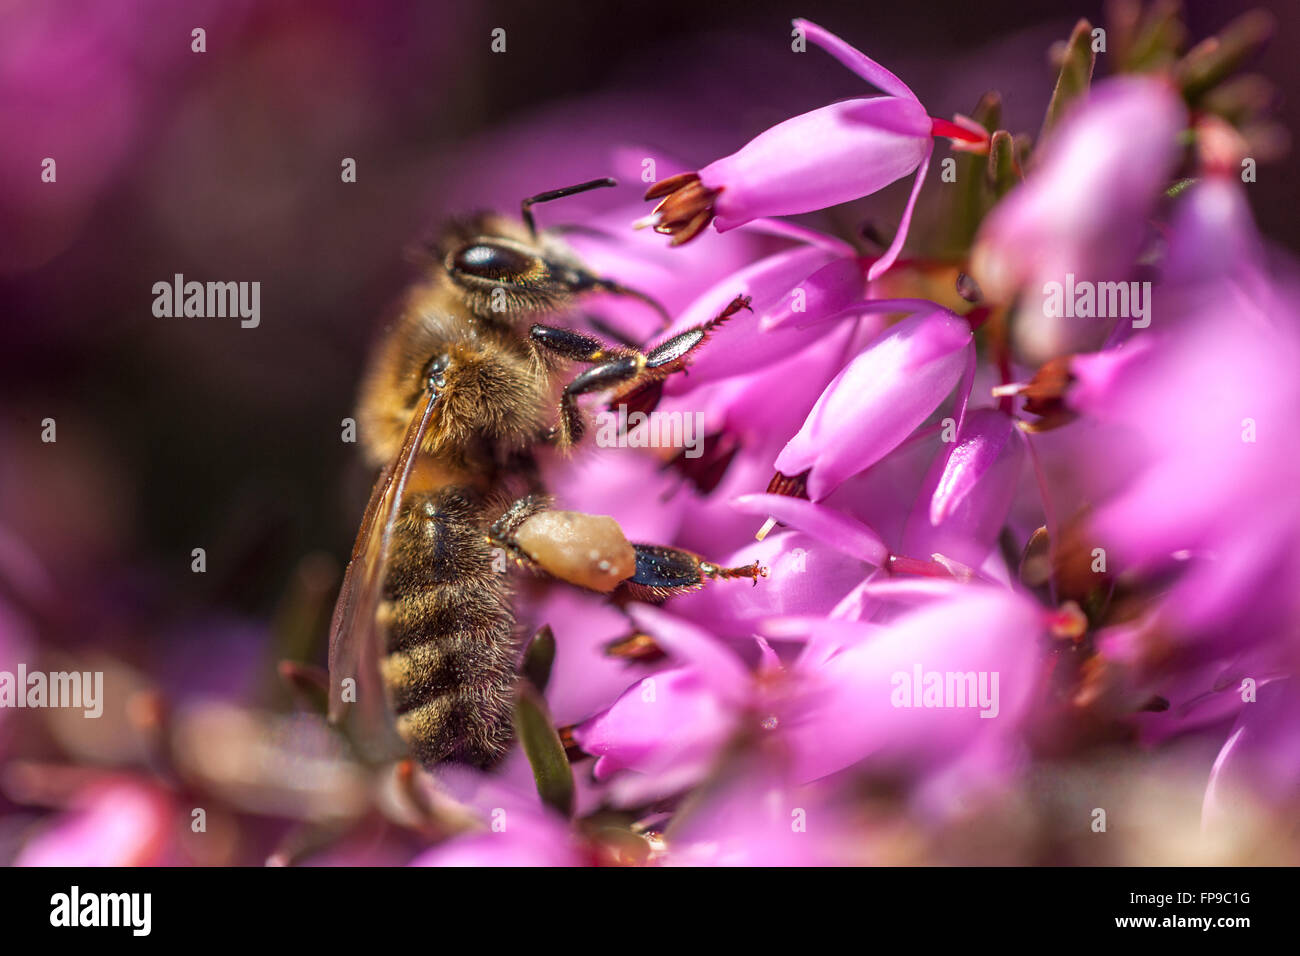 Erica  carnea  syn. herbacea 'Pirbright Rose' and close up bee on flower - Stock Image